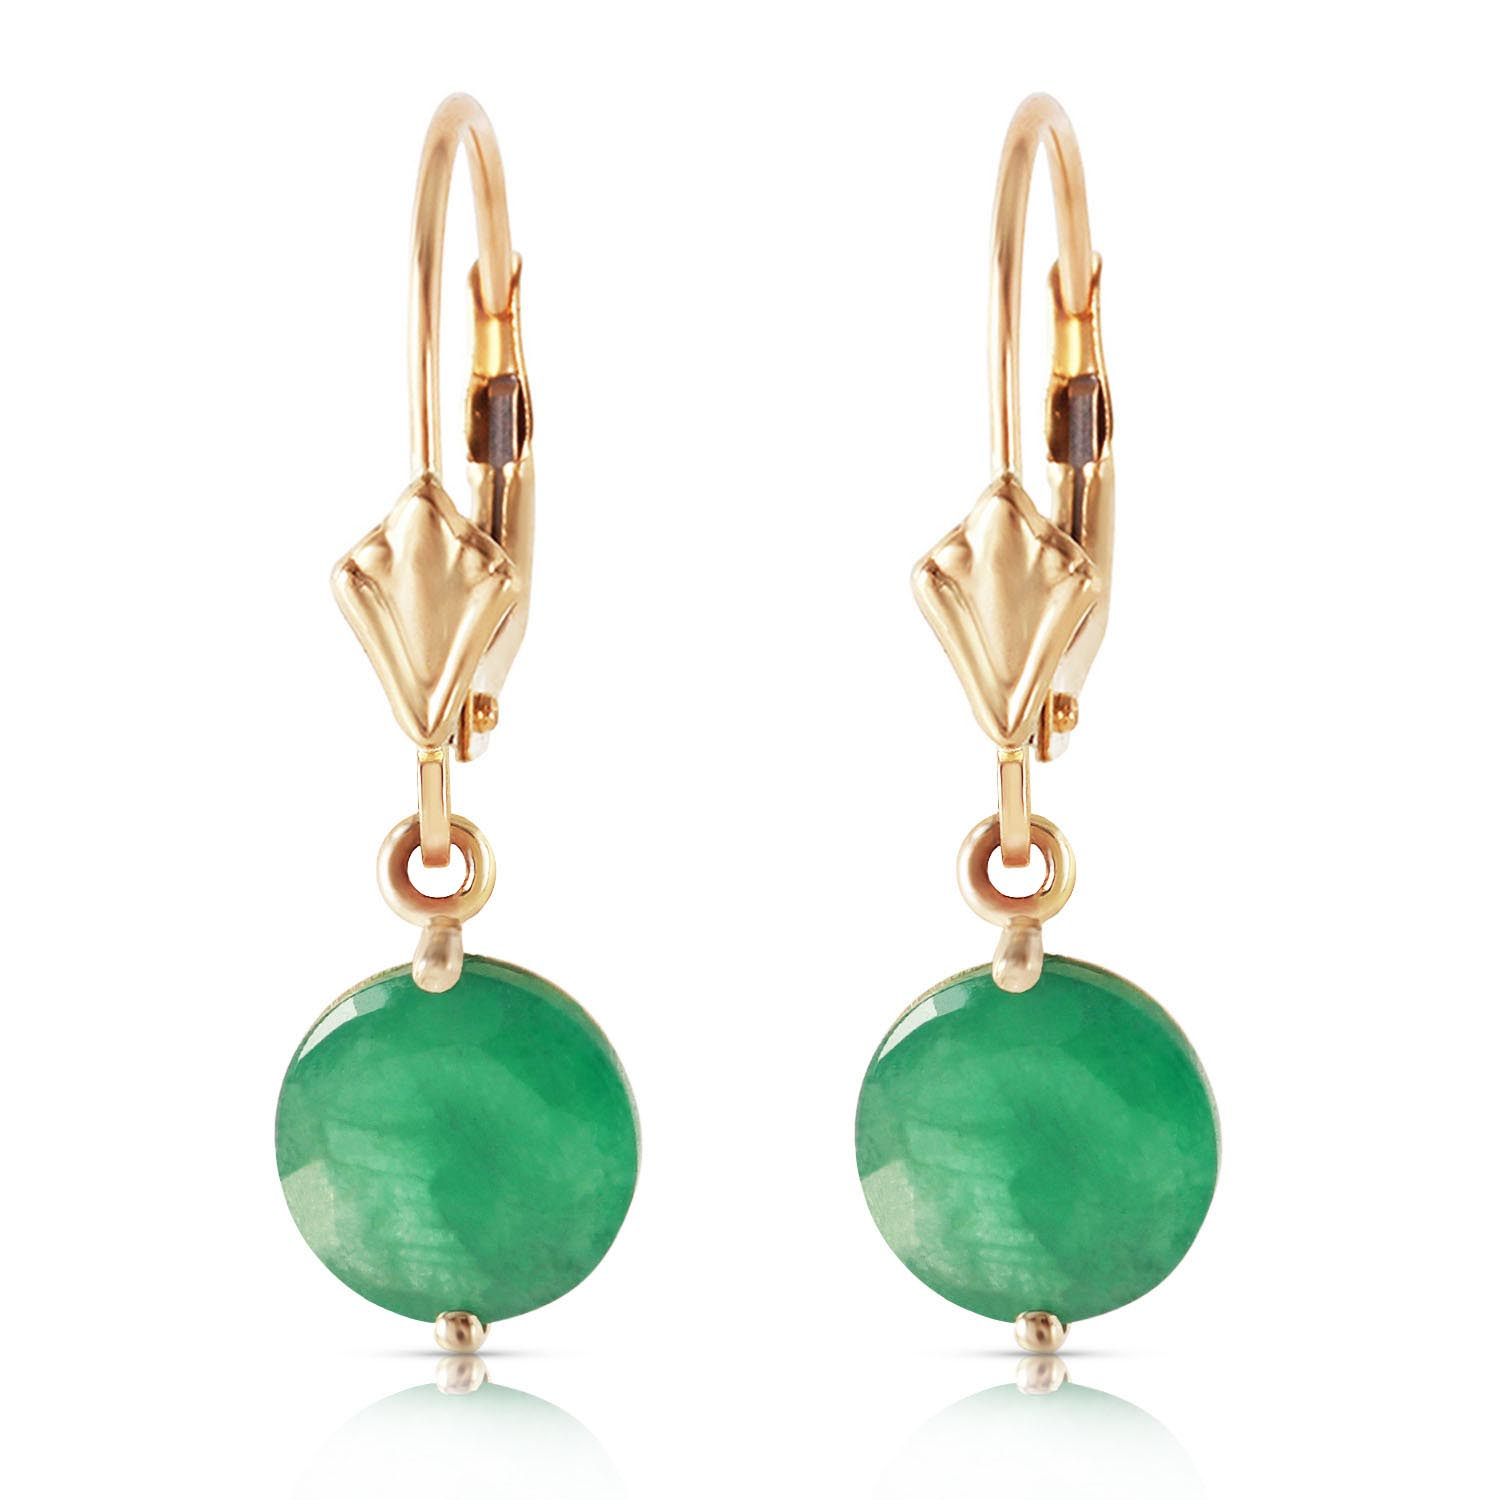 Emerald Drop Earrings 3.3 ctw in 9ct Gold